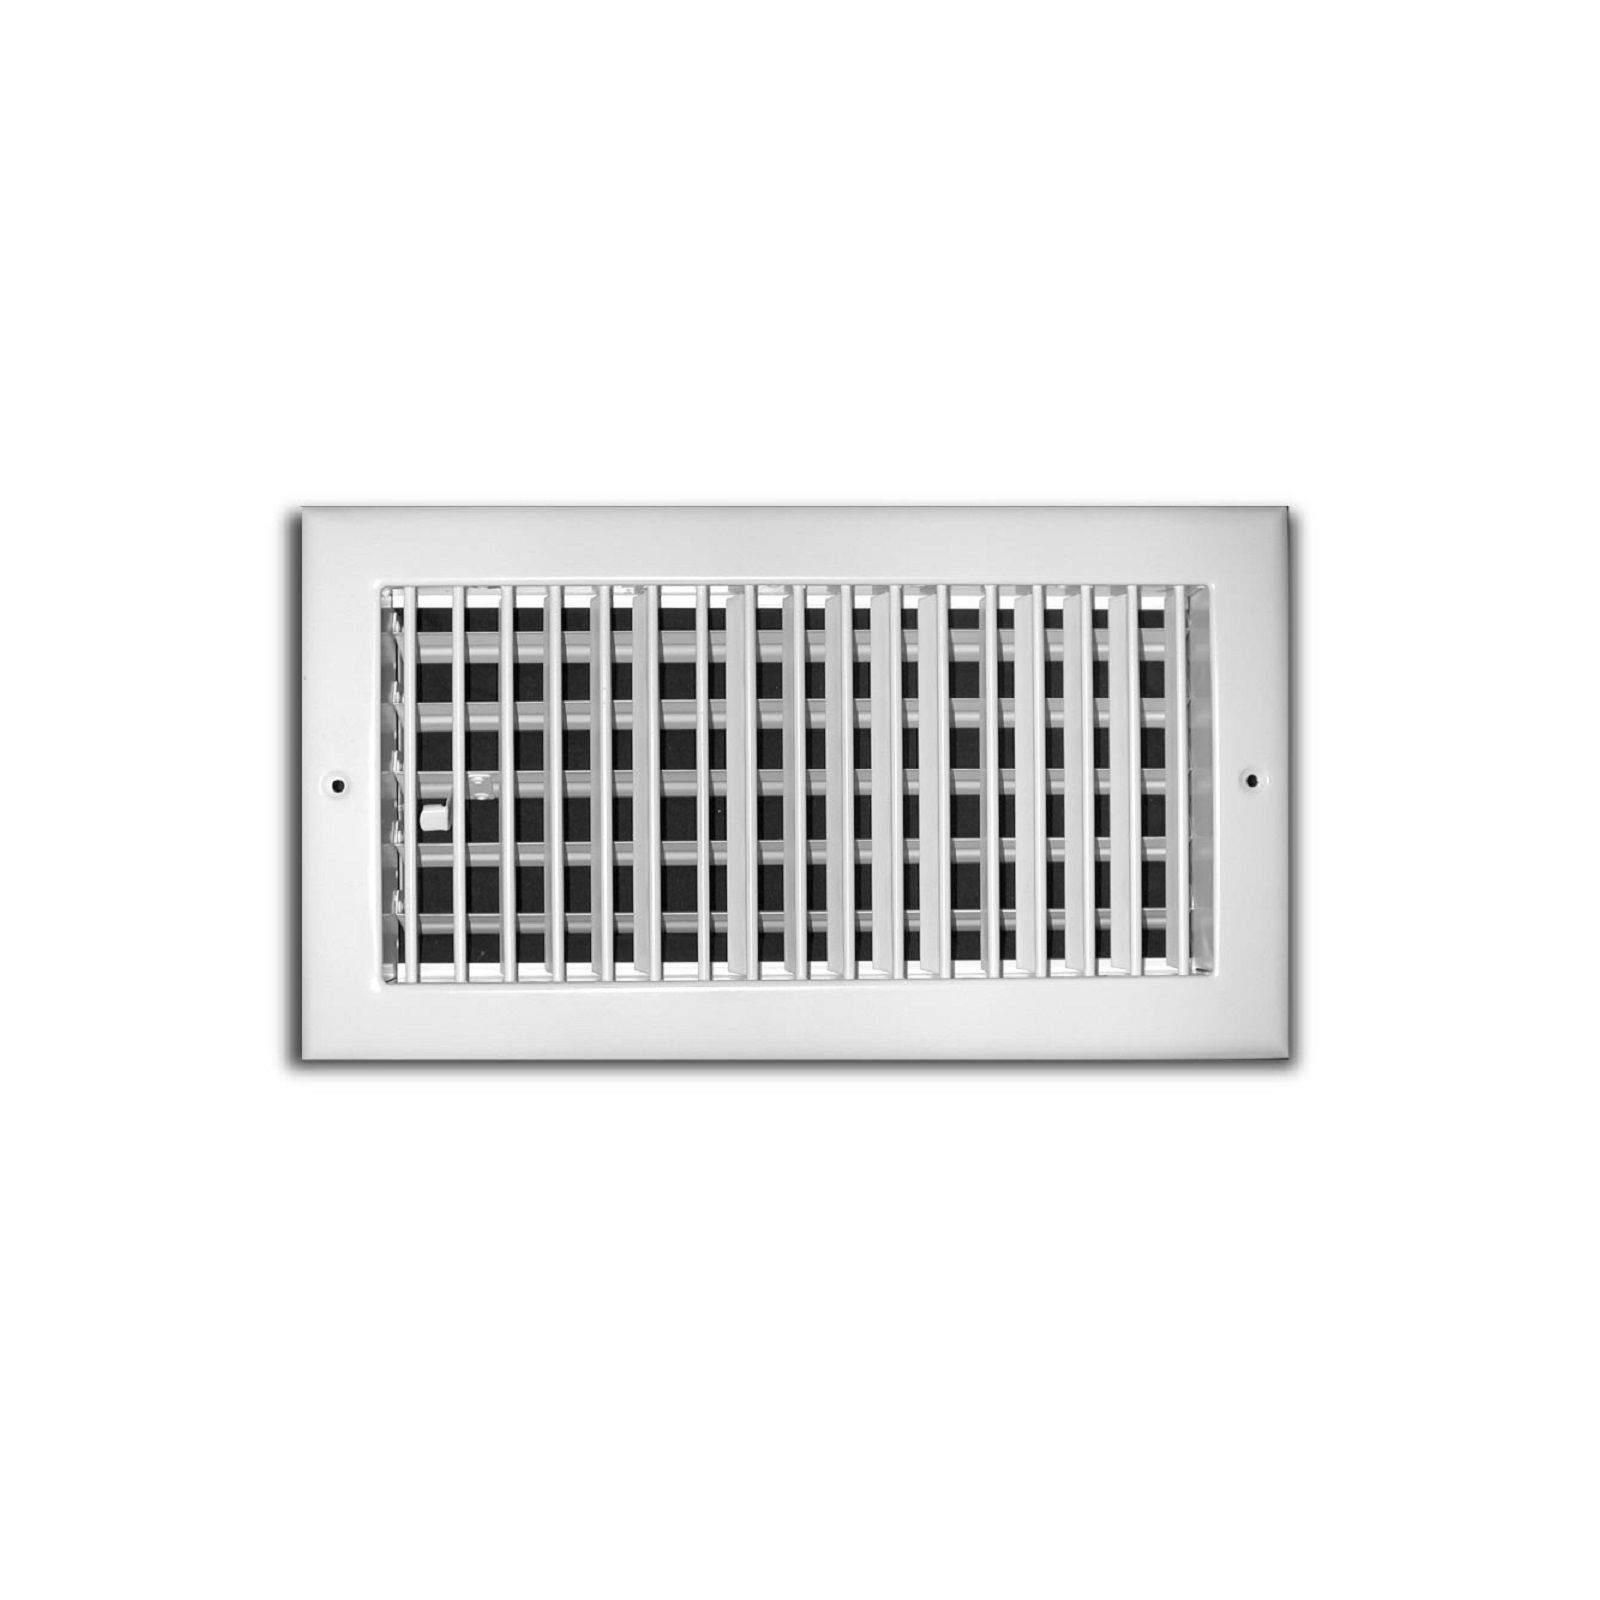 "TRUaire 210VM 10X04 - Steel Adjustable 1-Way Wall/Ceiling Register With Multi Shutter Damper, White, 10"" X 04"""